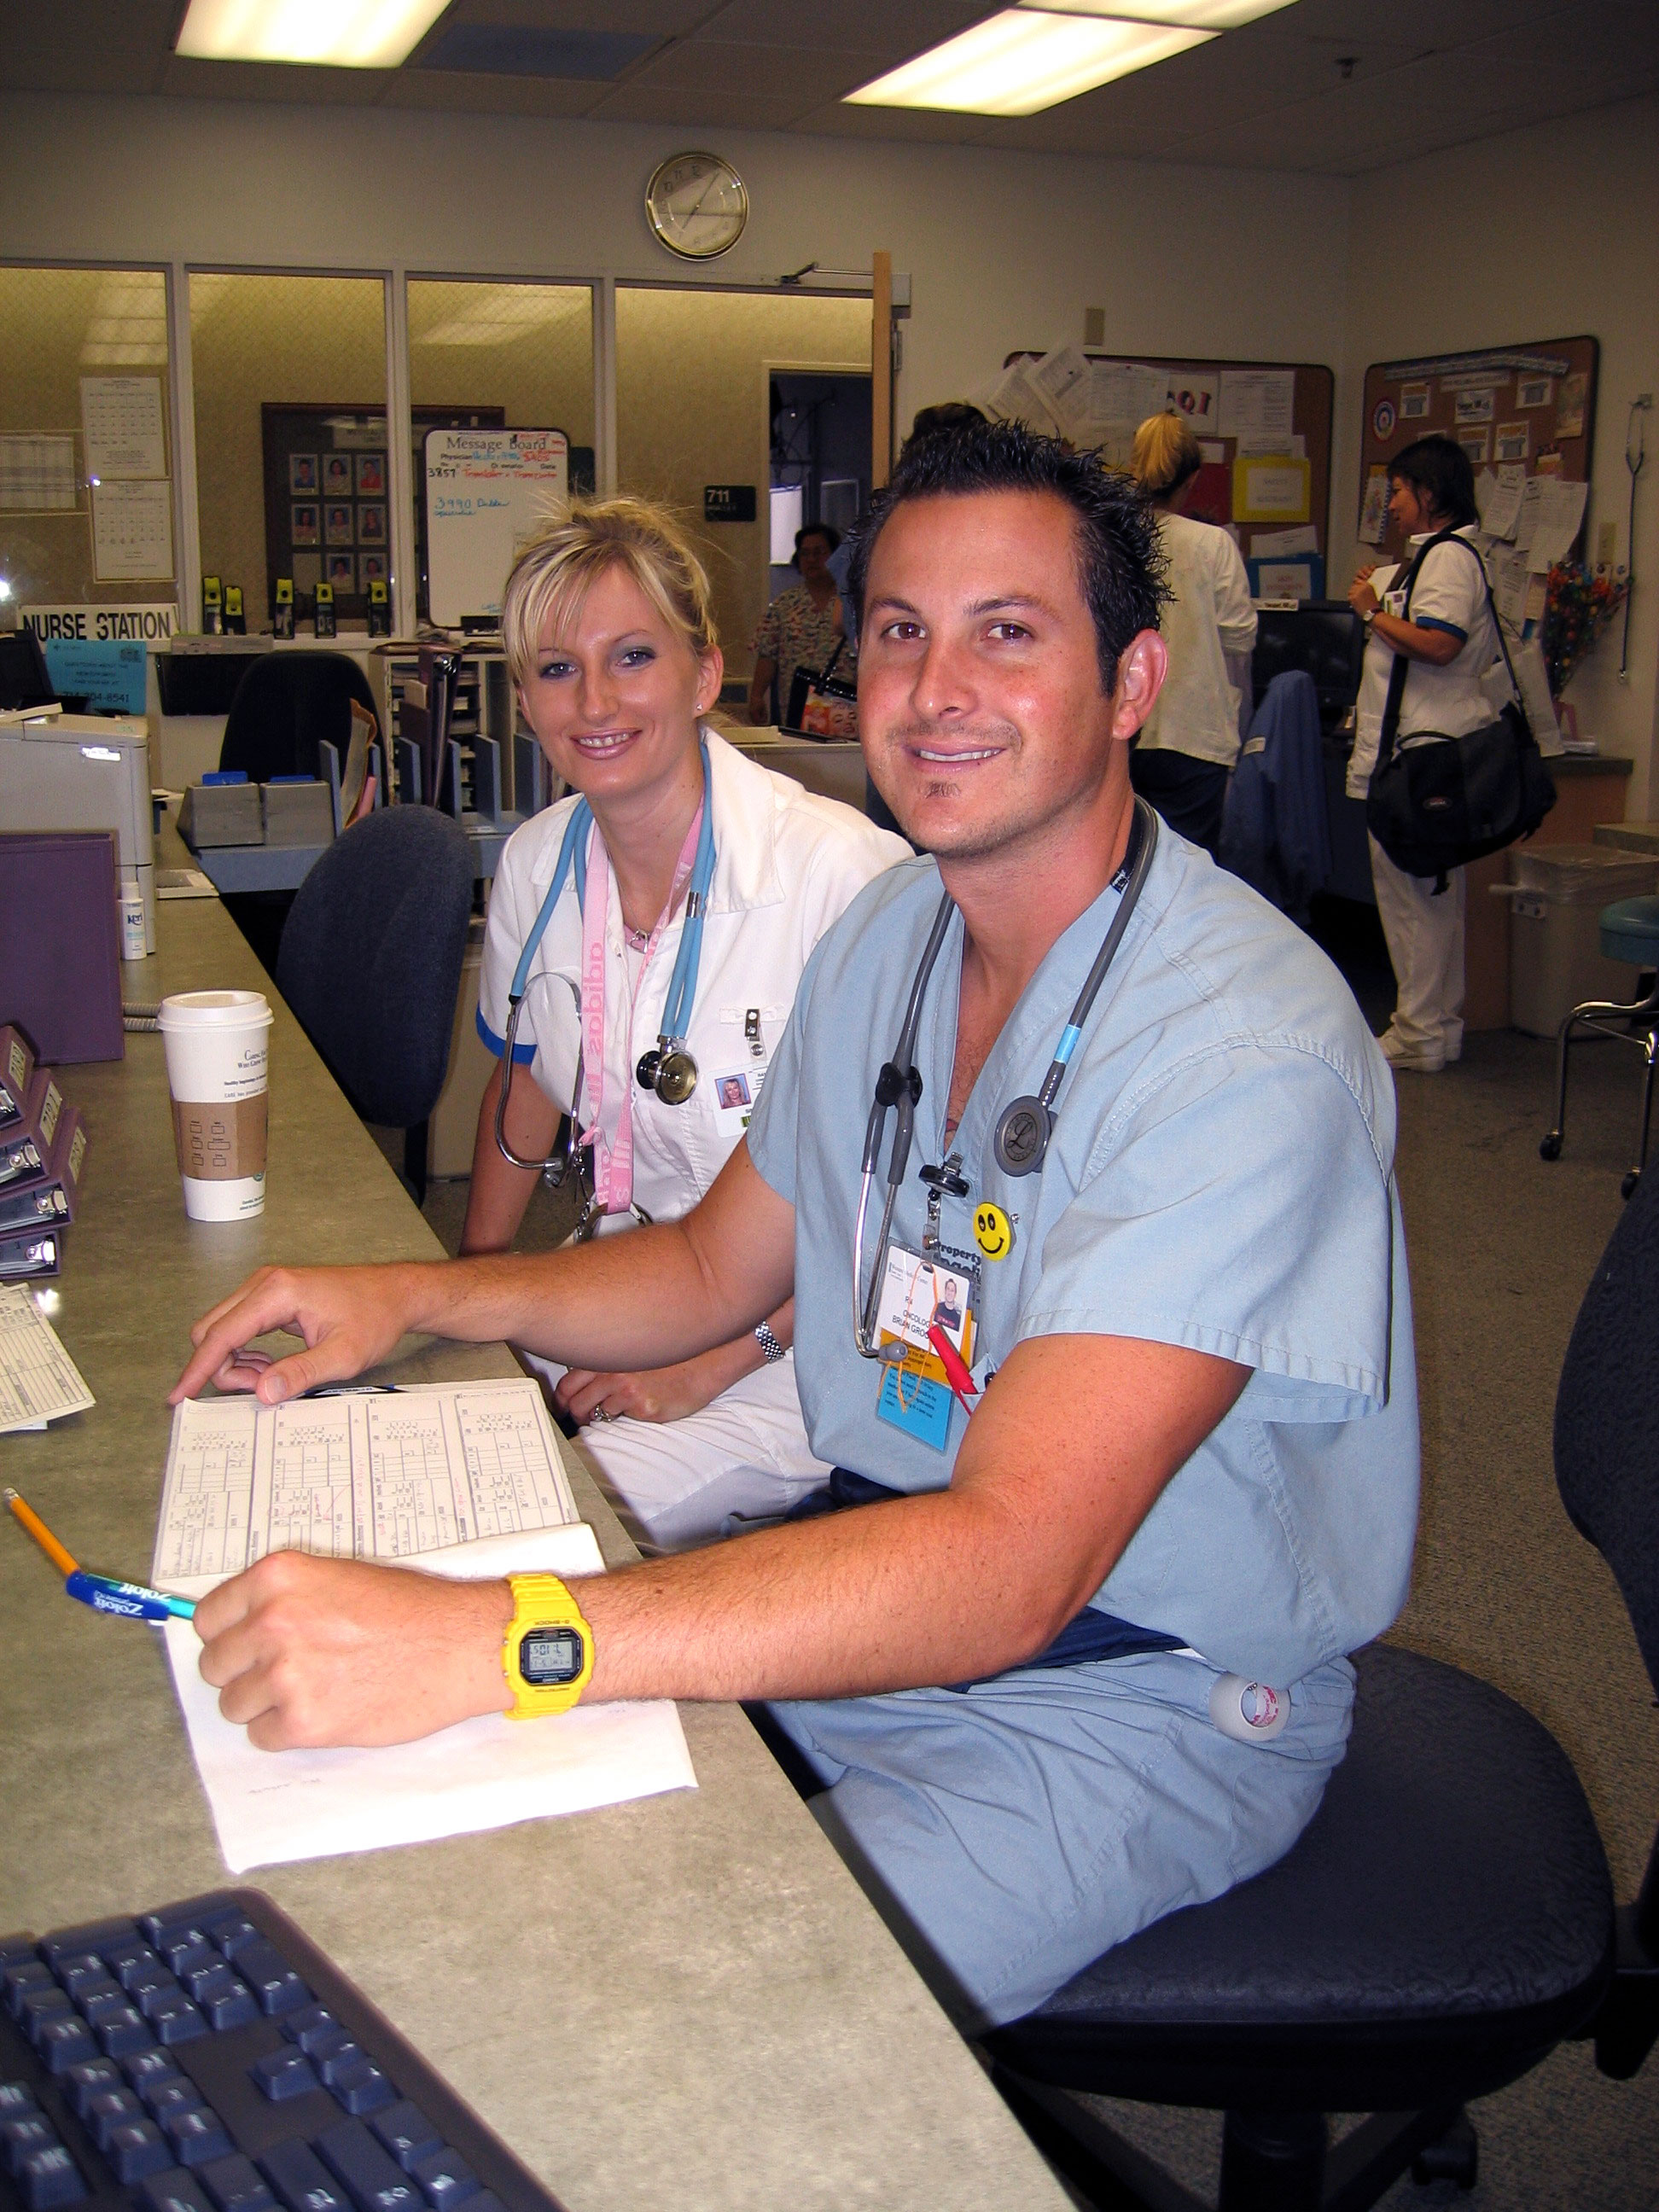 Male and Female nursing students in uniform at Skills lab